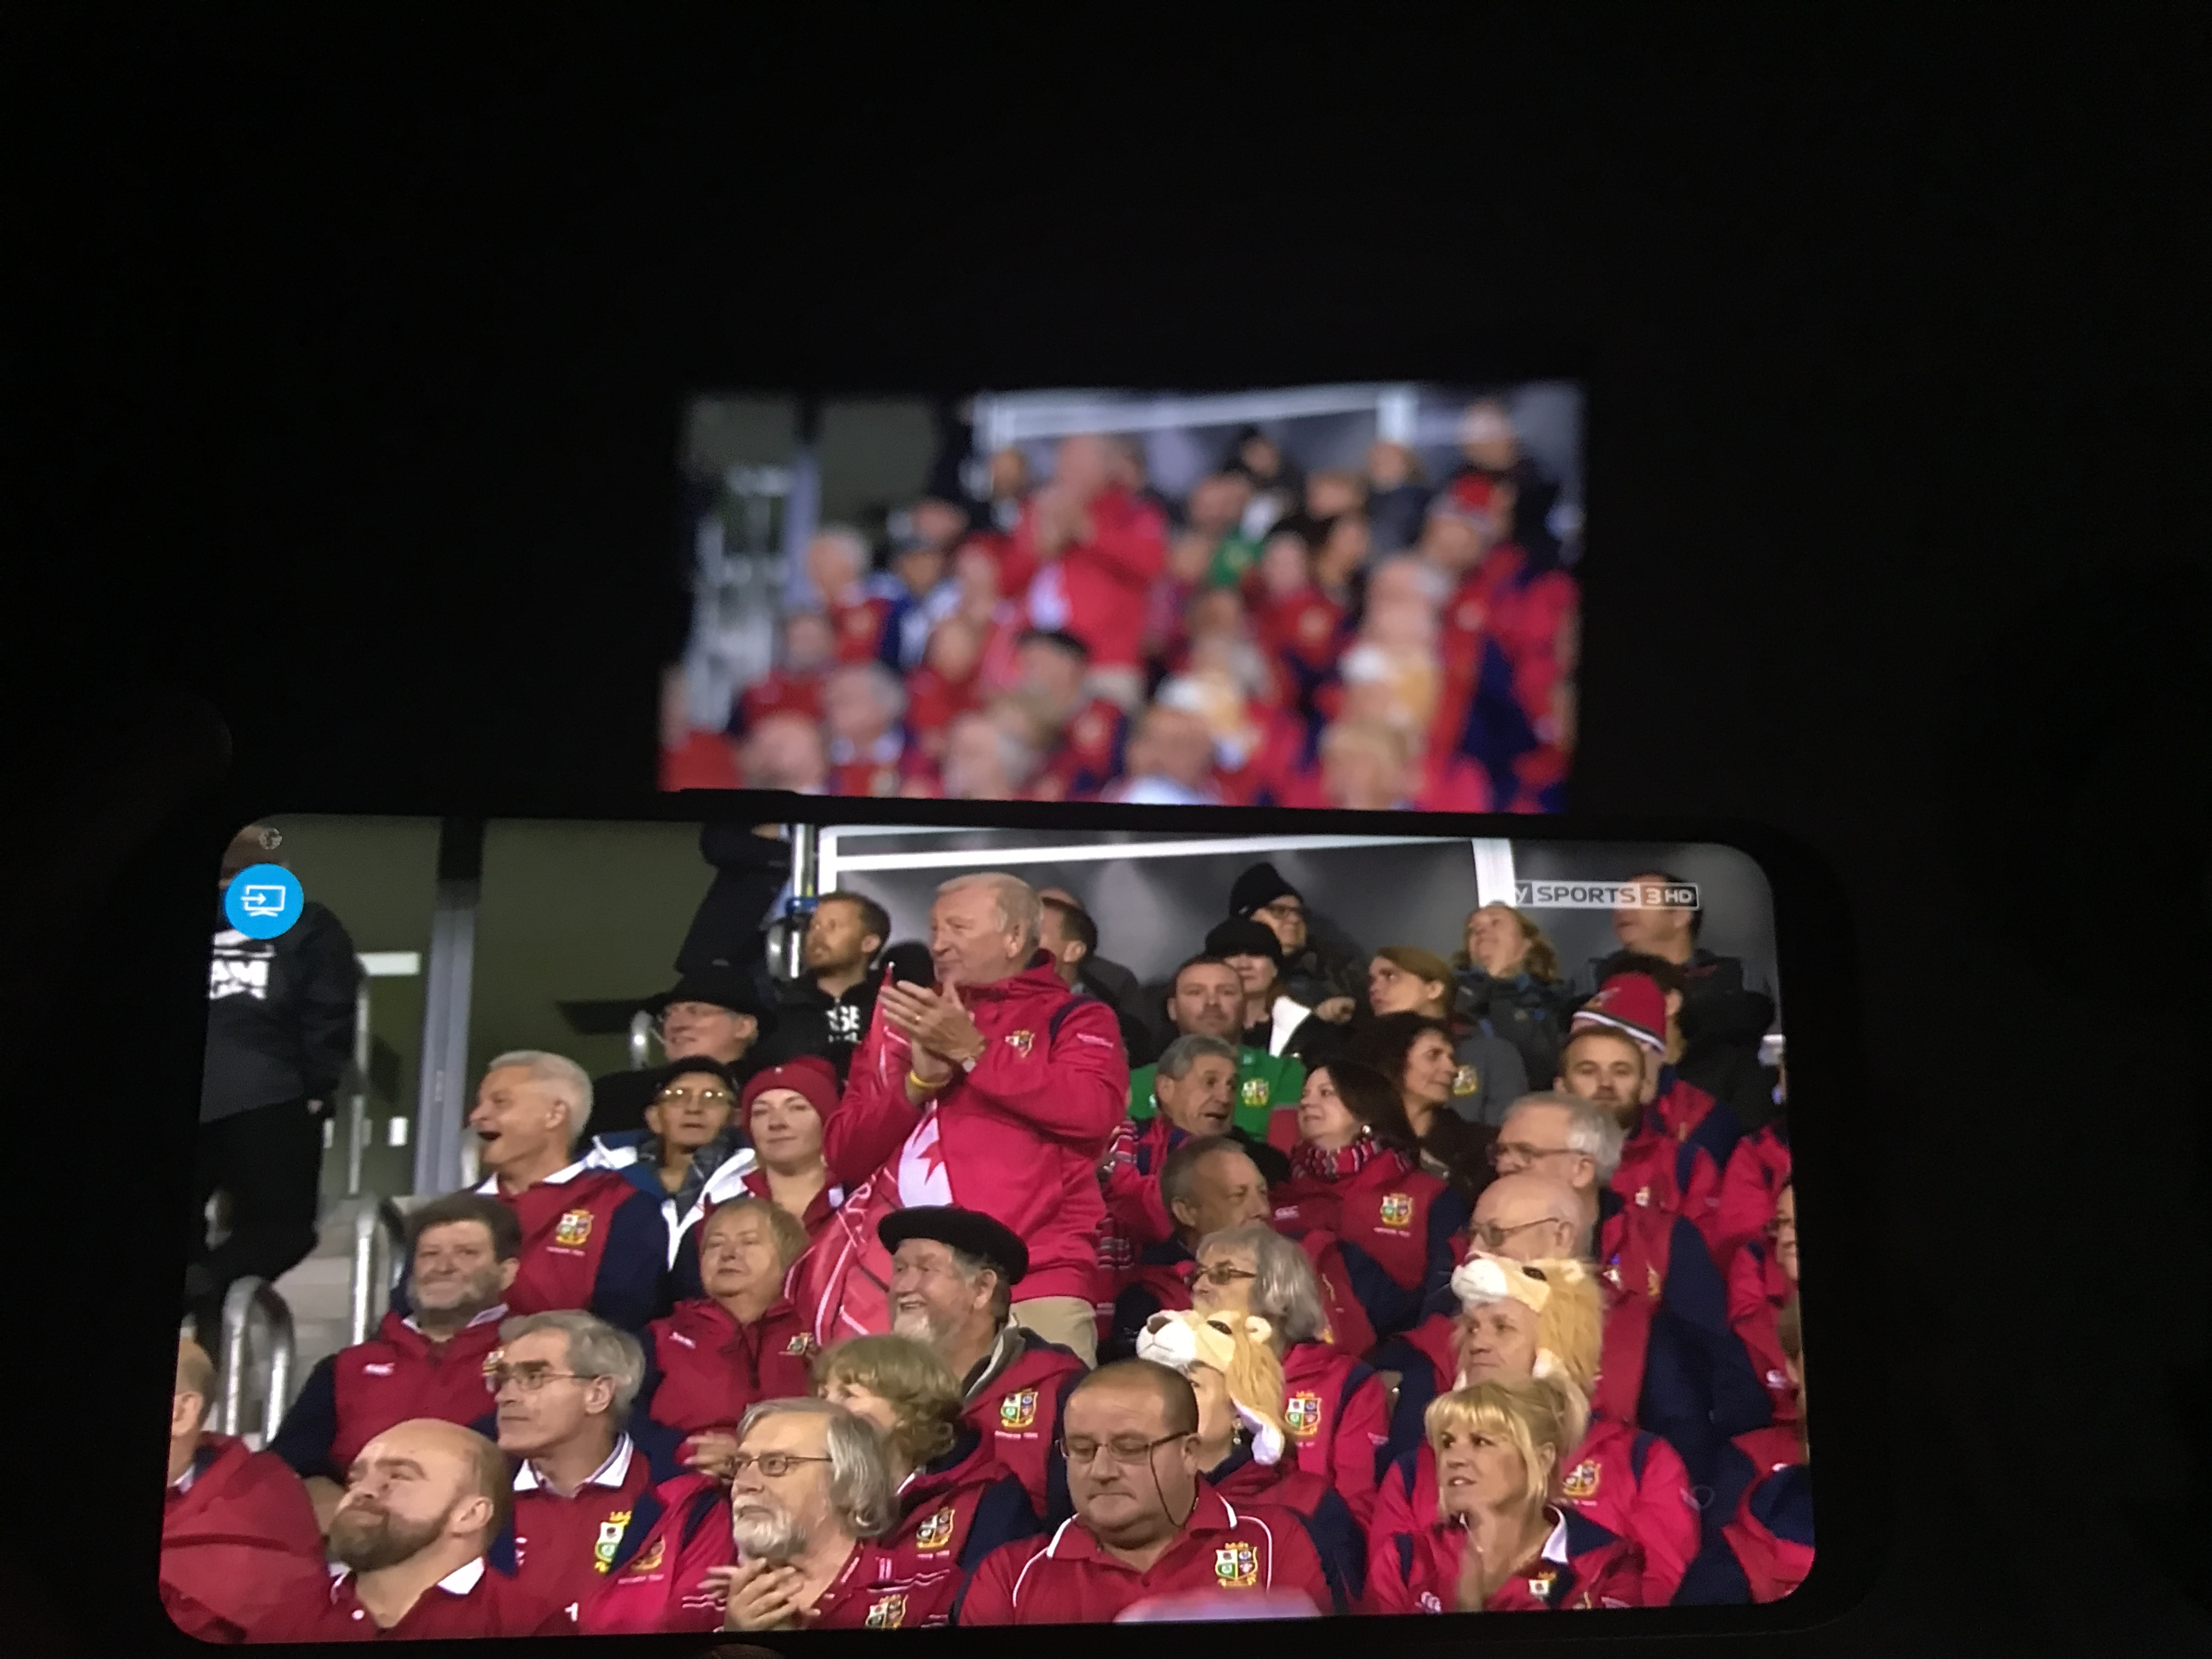 Best_Free_Live_TV_App_Android_Apk_2017 (2)